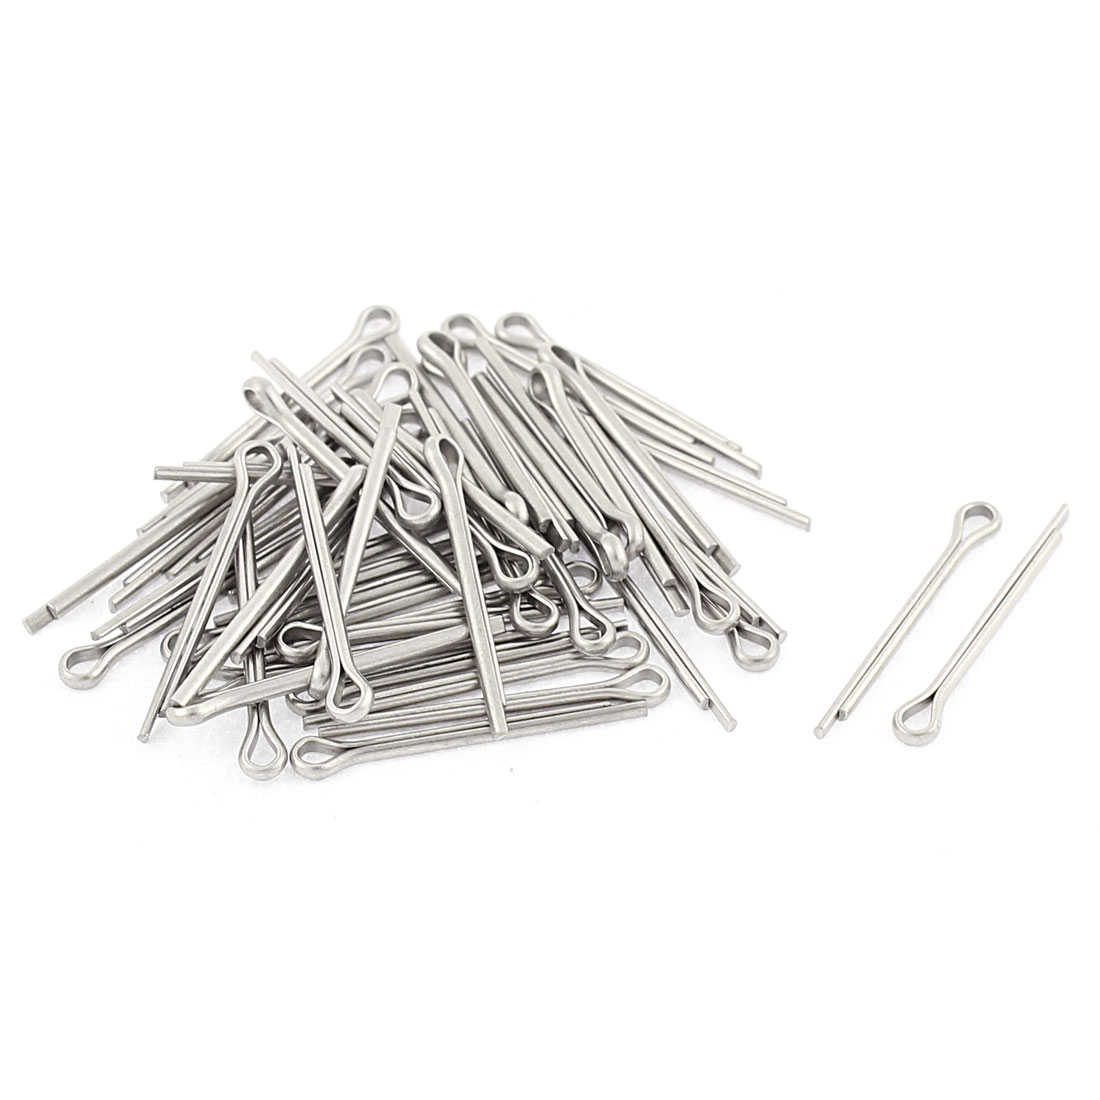 M1.2x16mm 304 Stainless Steel Split Cotter Pins Silver Tone 50pcs